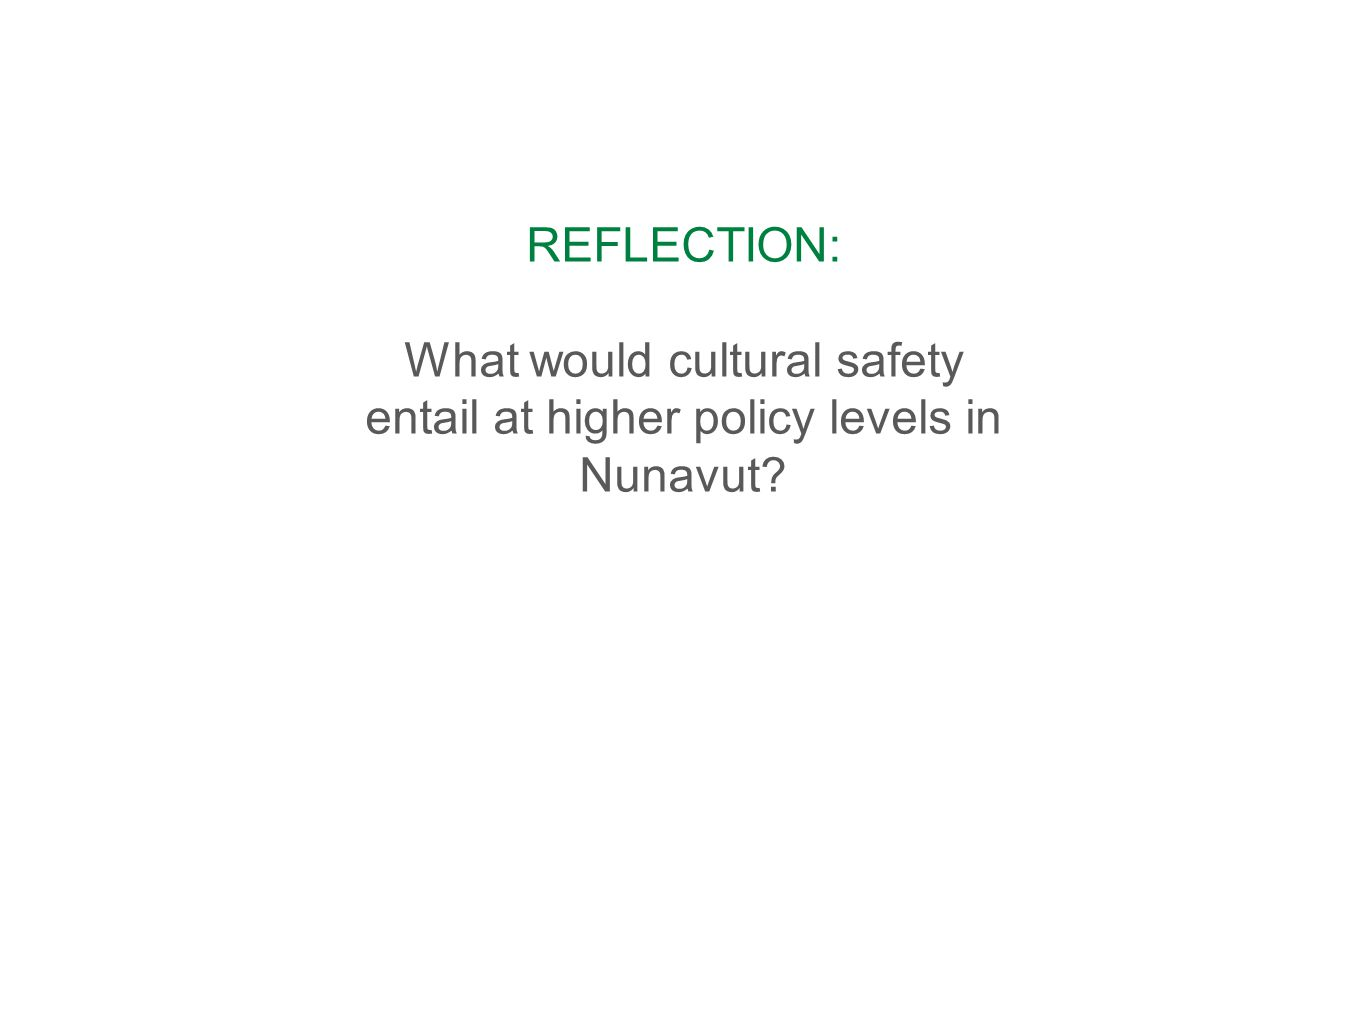 What would cultural safety entail at higher policy levels in Nunavut